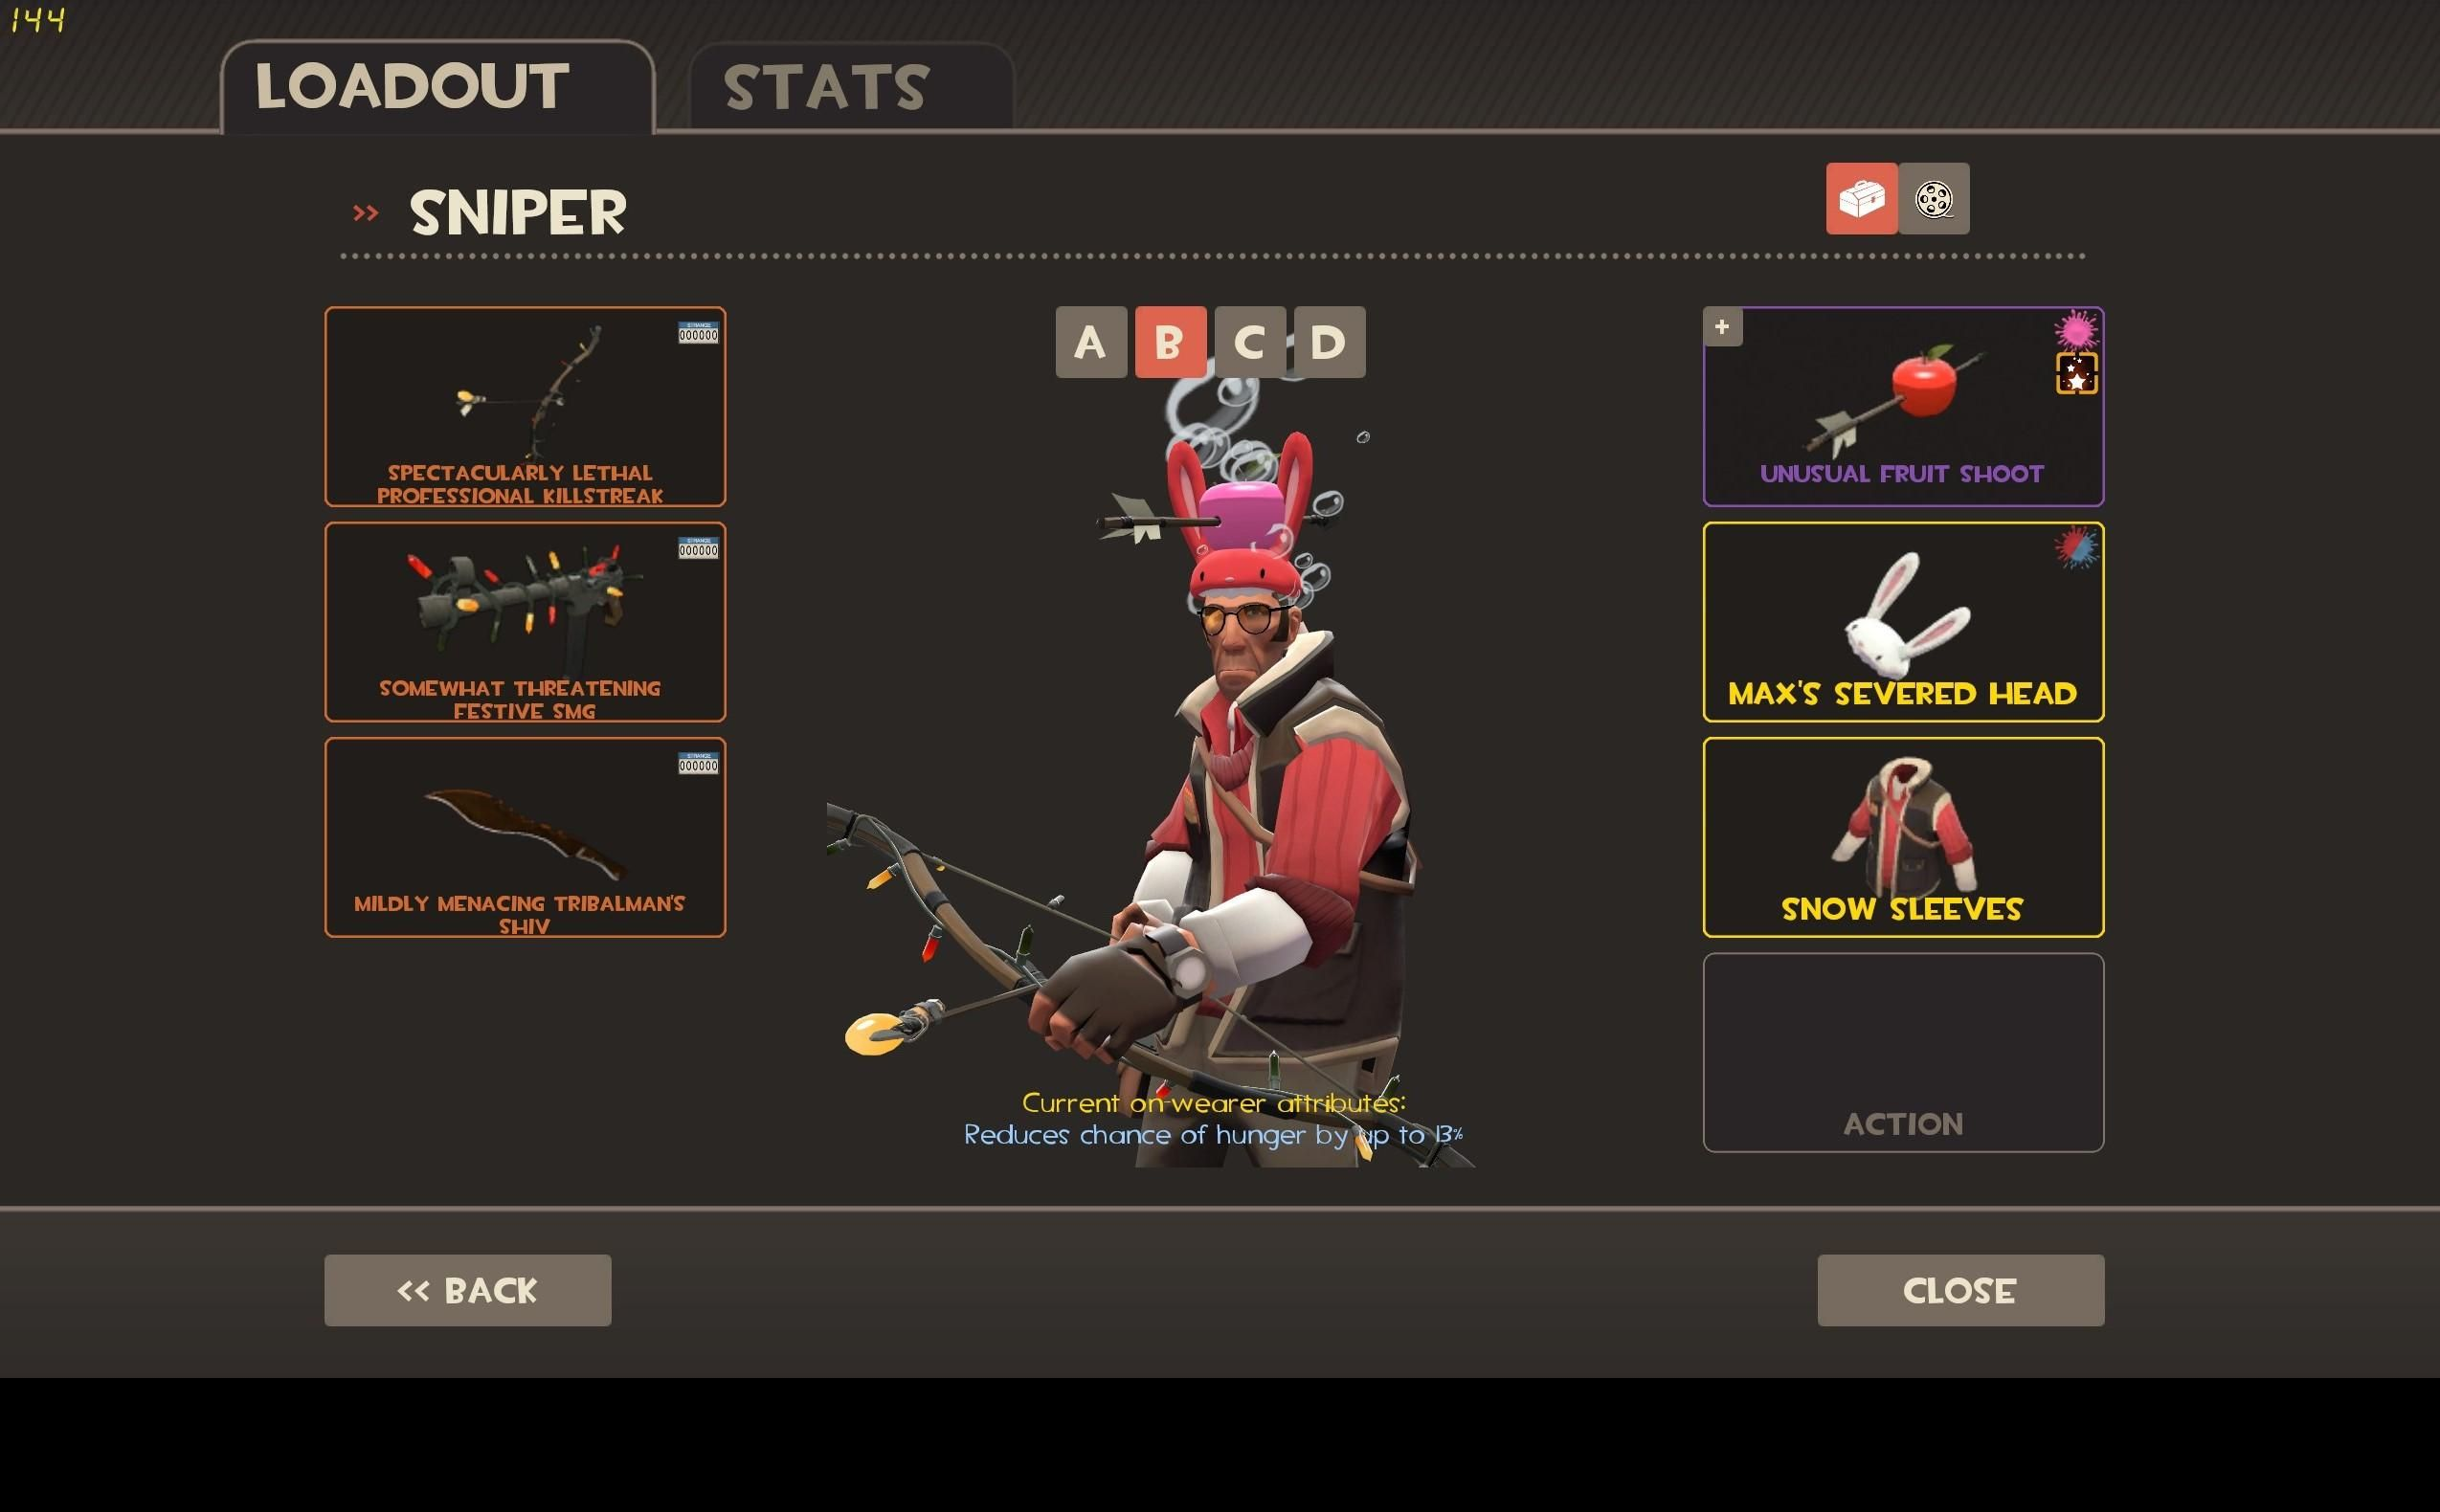 Fruit shoot game - I Thought That The Max S Severed Head Hat Worked Well With The Fruit Shoot